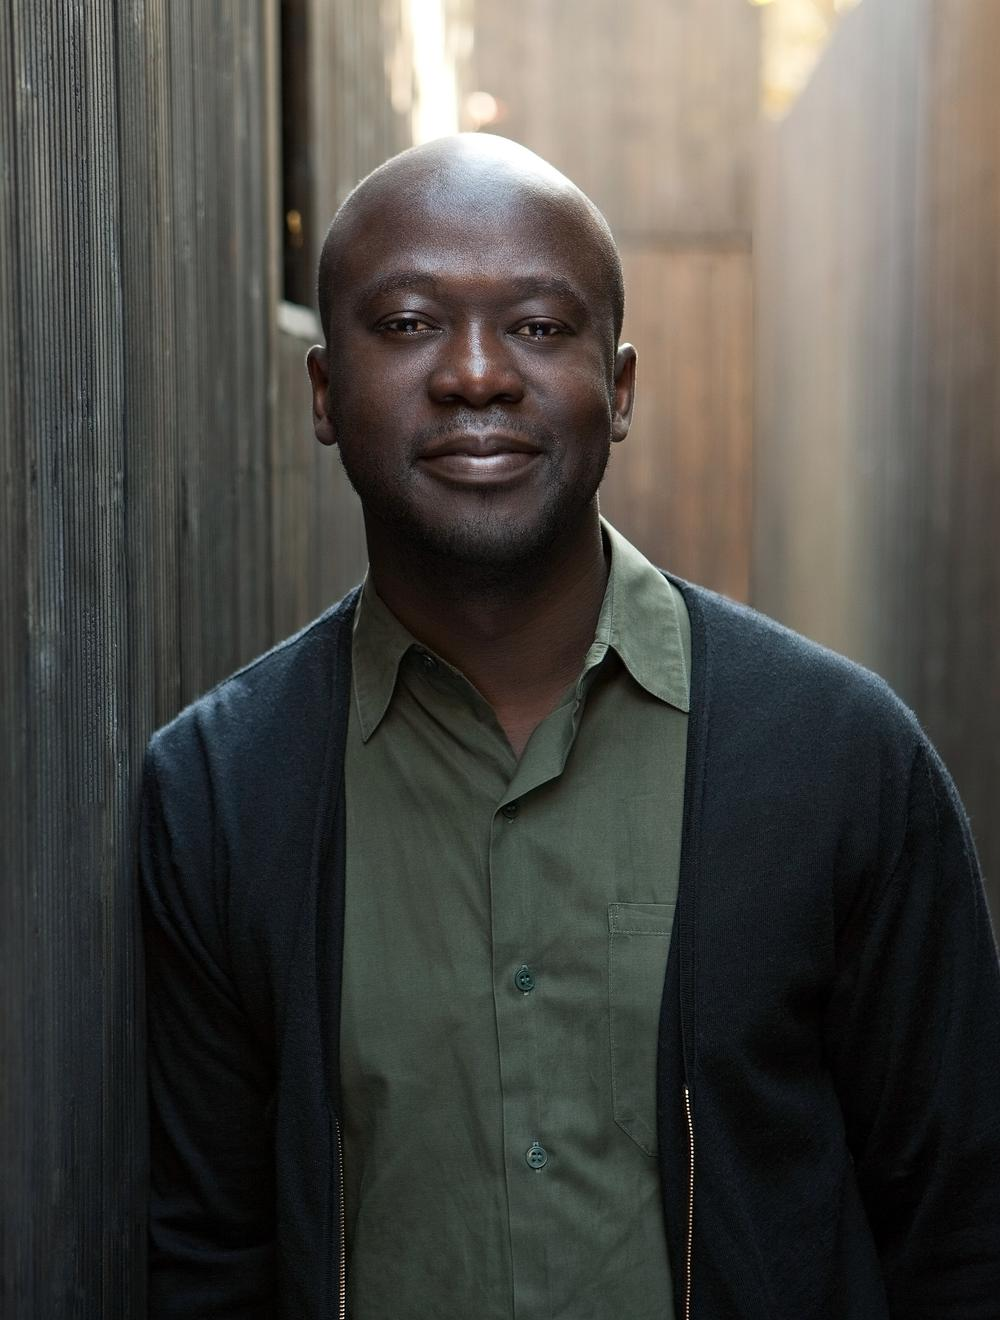 David Adjaye was born in Tanzania to Ghanaian parents and moved to the UK aged nine. He was awarded an OBE in 2007 / All photos: Adjaye Associates